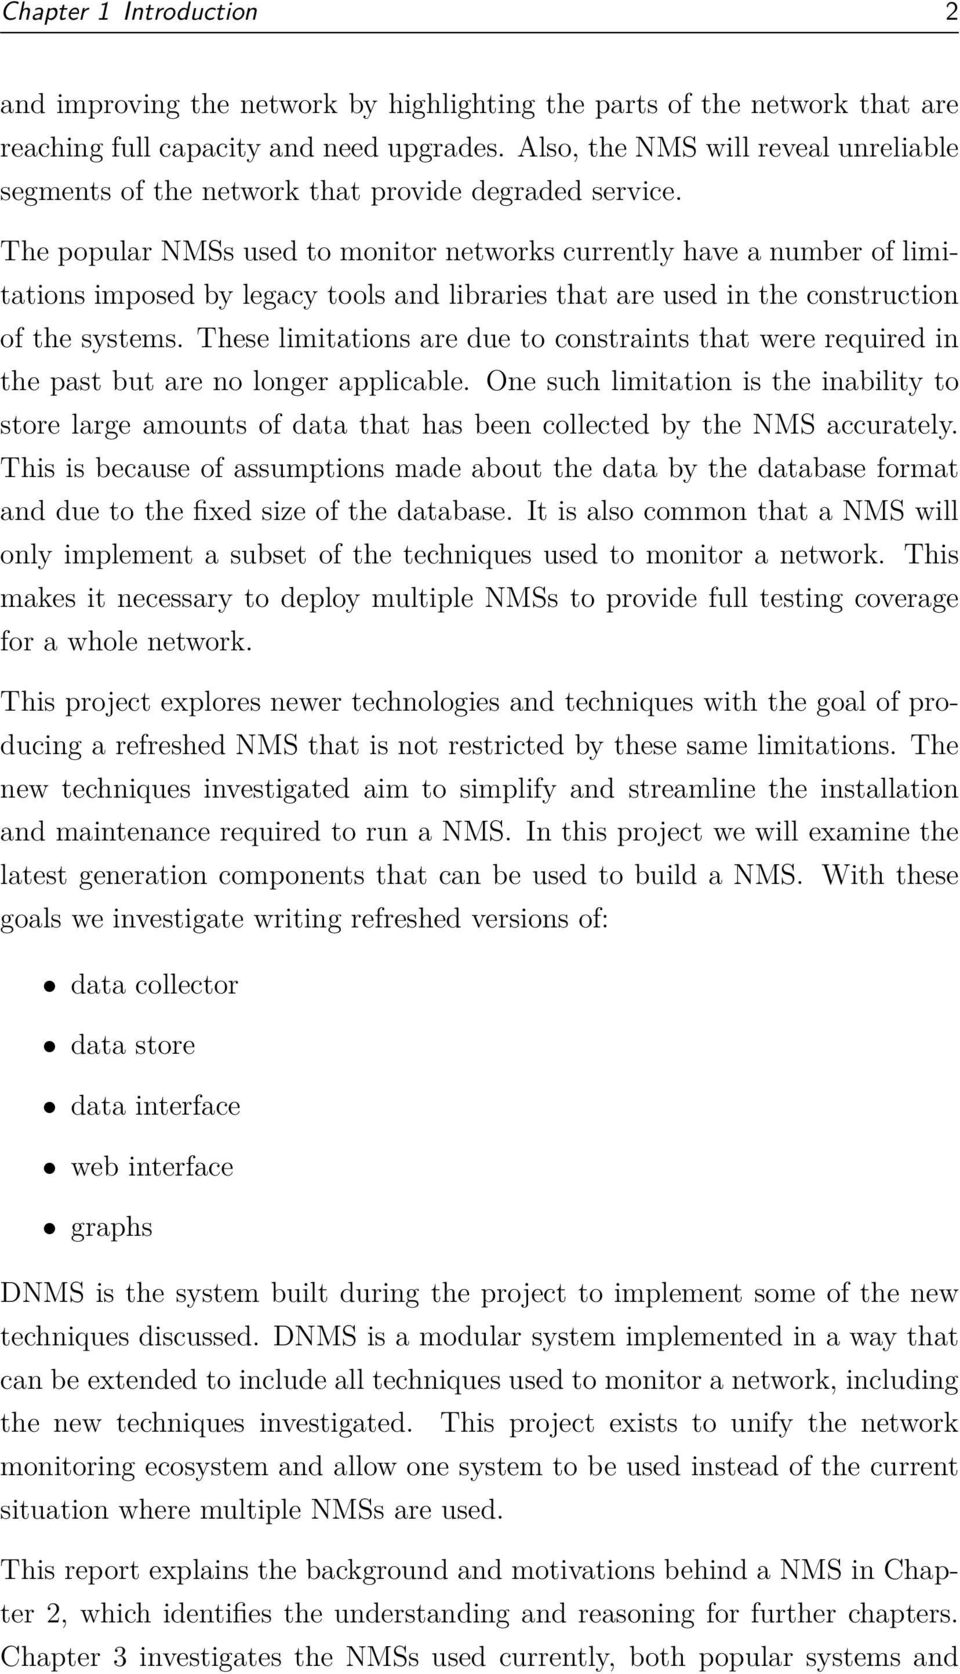 The popular NMSs used to monitor networks currently have a number of limitations imposed by legacy tools and libraries that are used in the construction of the systems.